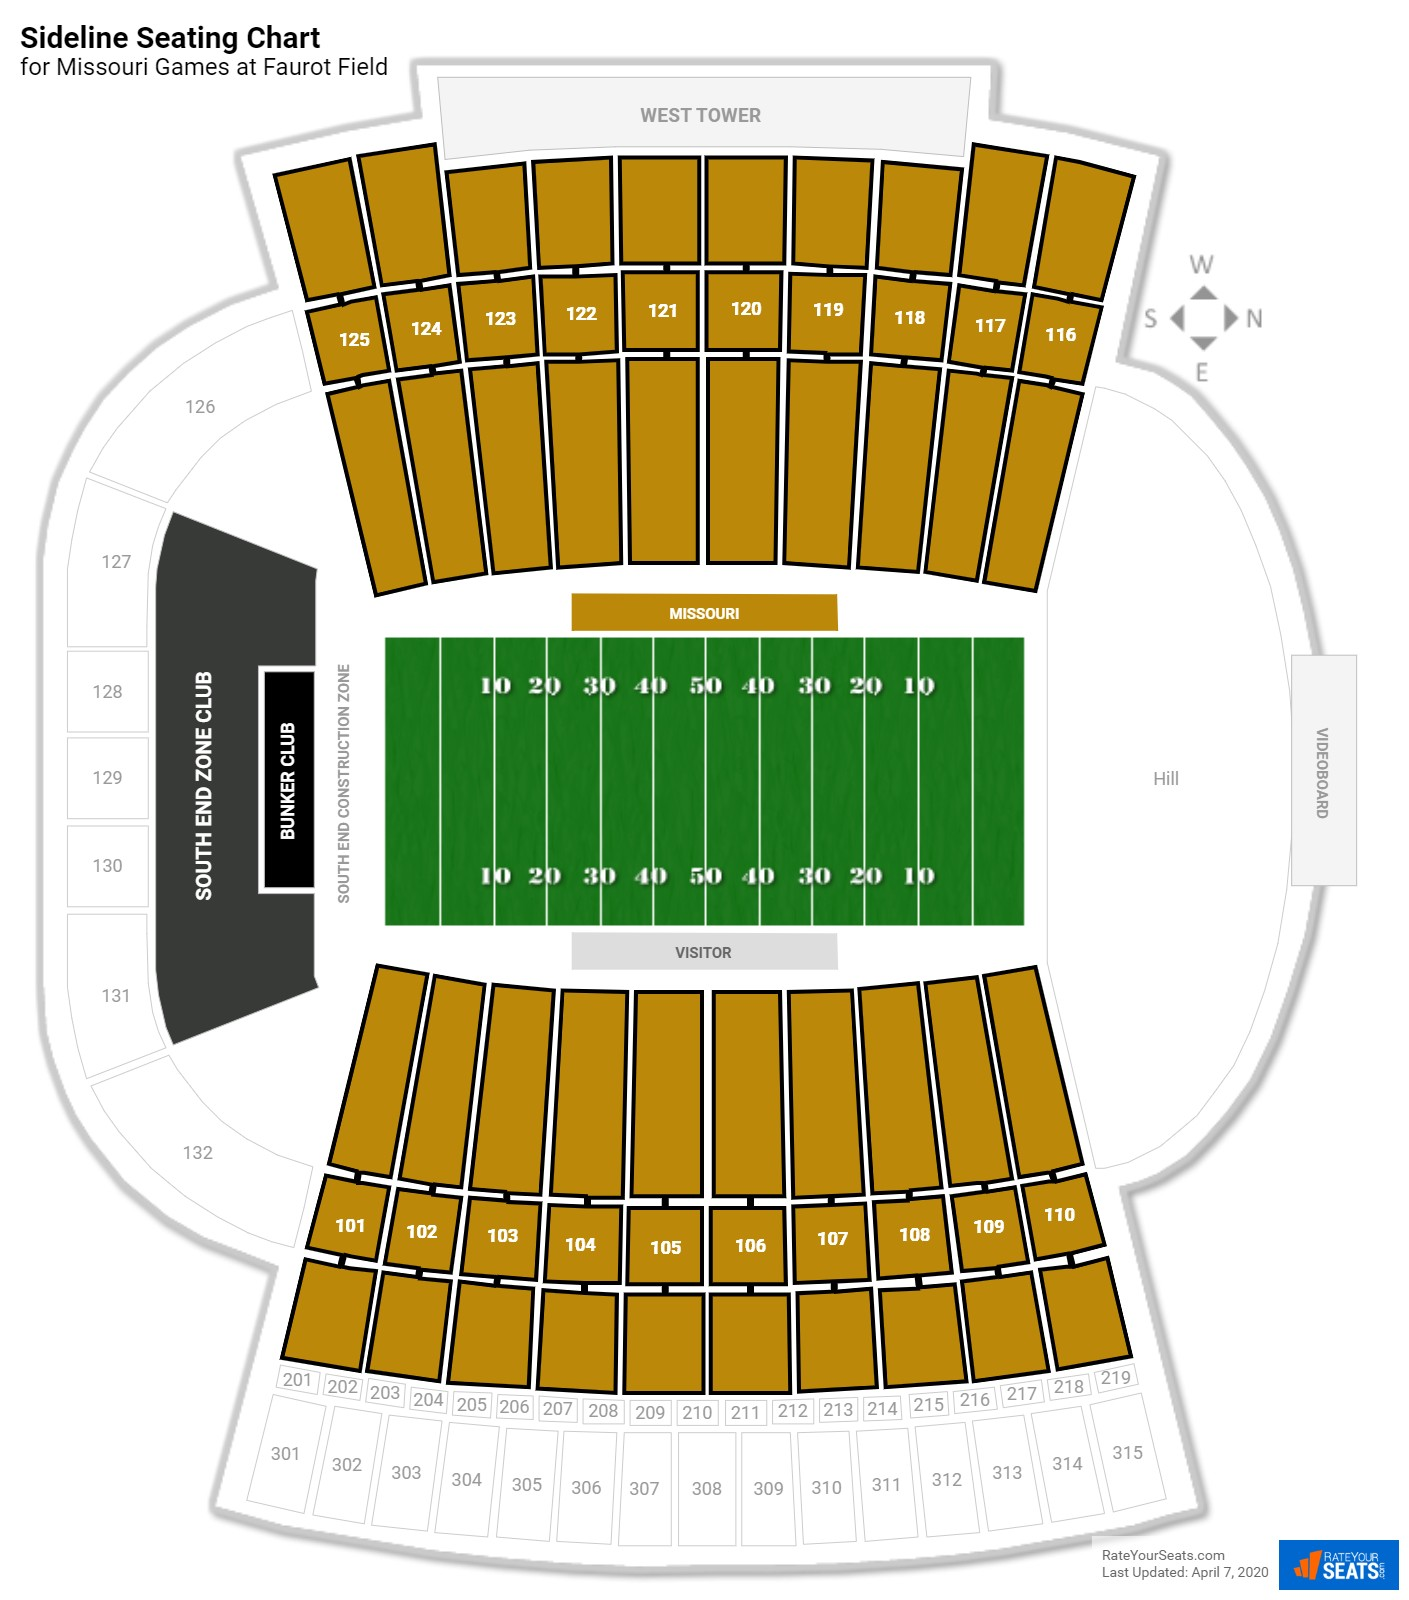 Faurot Field (Memorial Stadium) Sideline seating chart